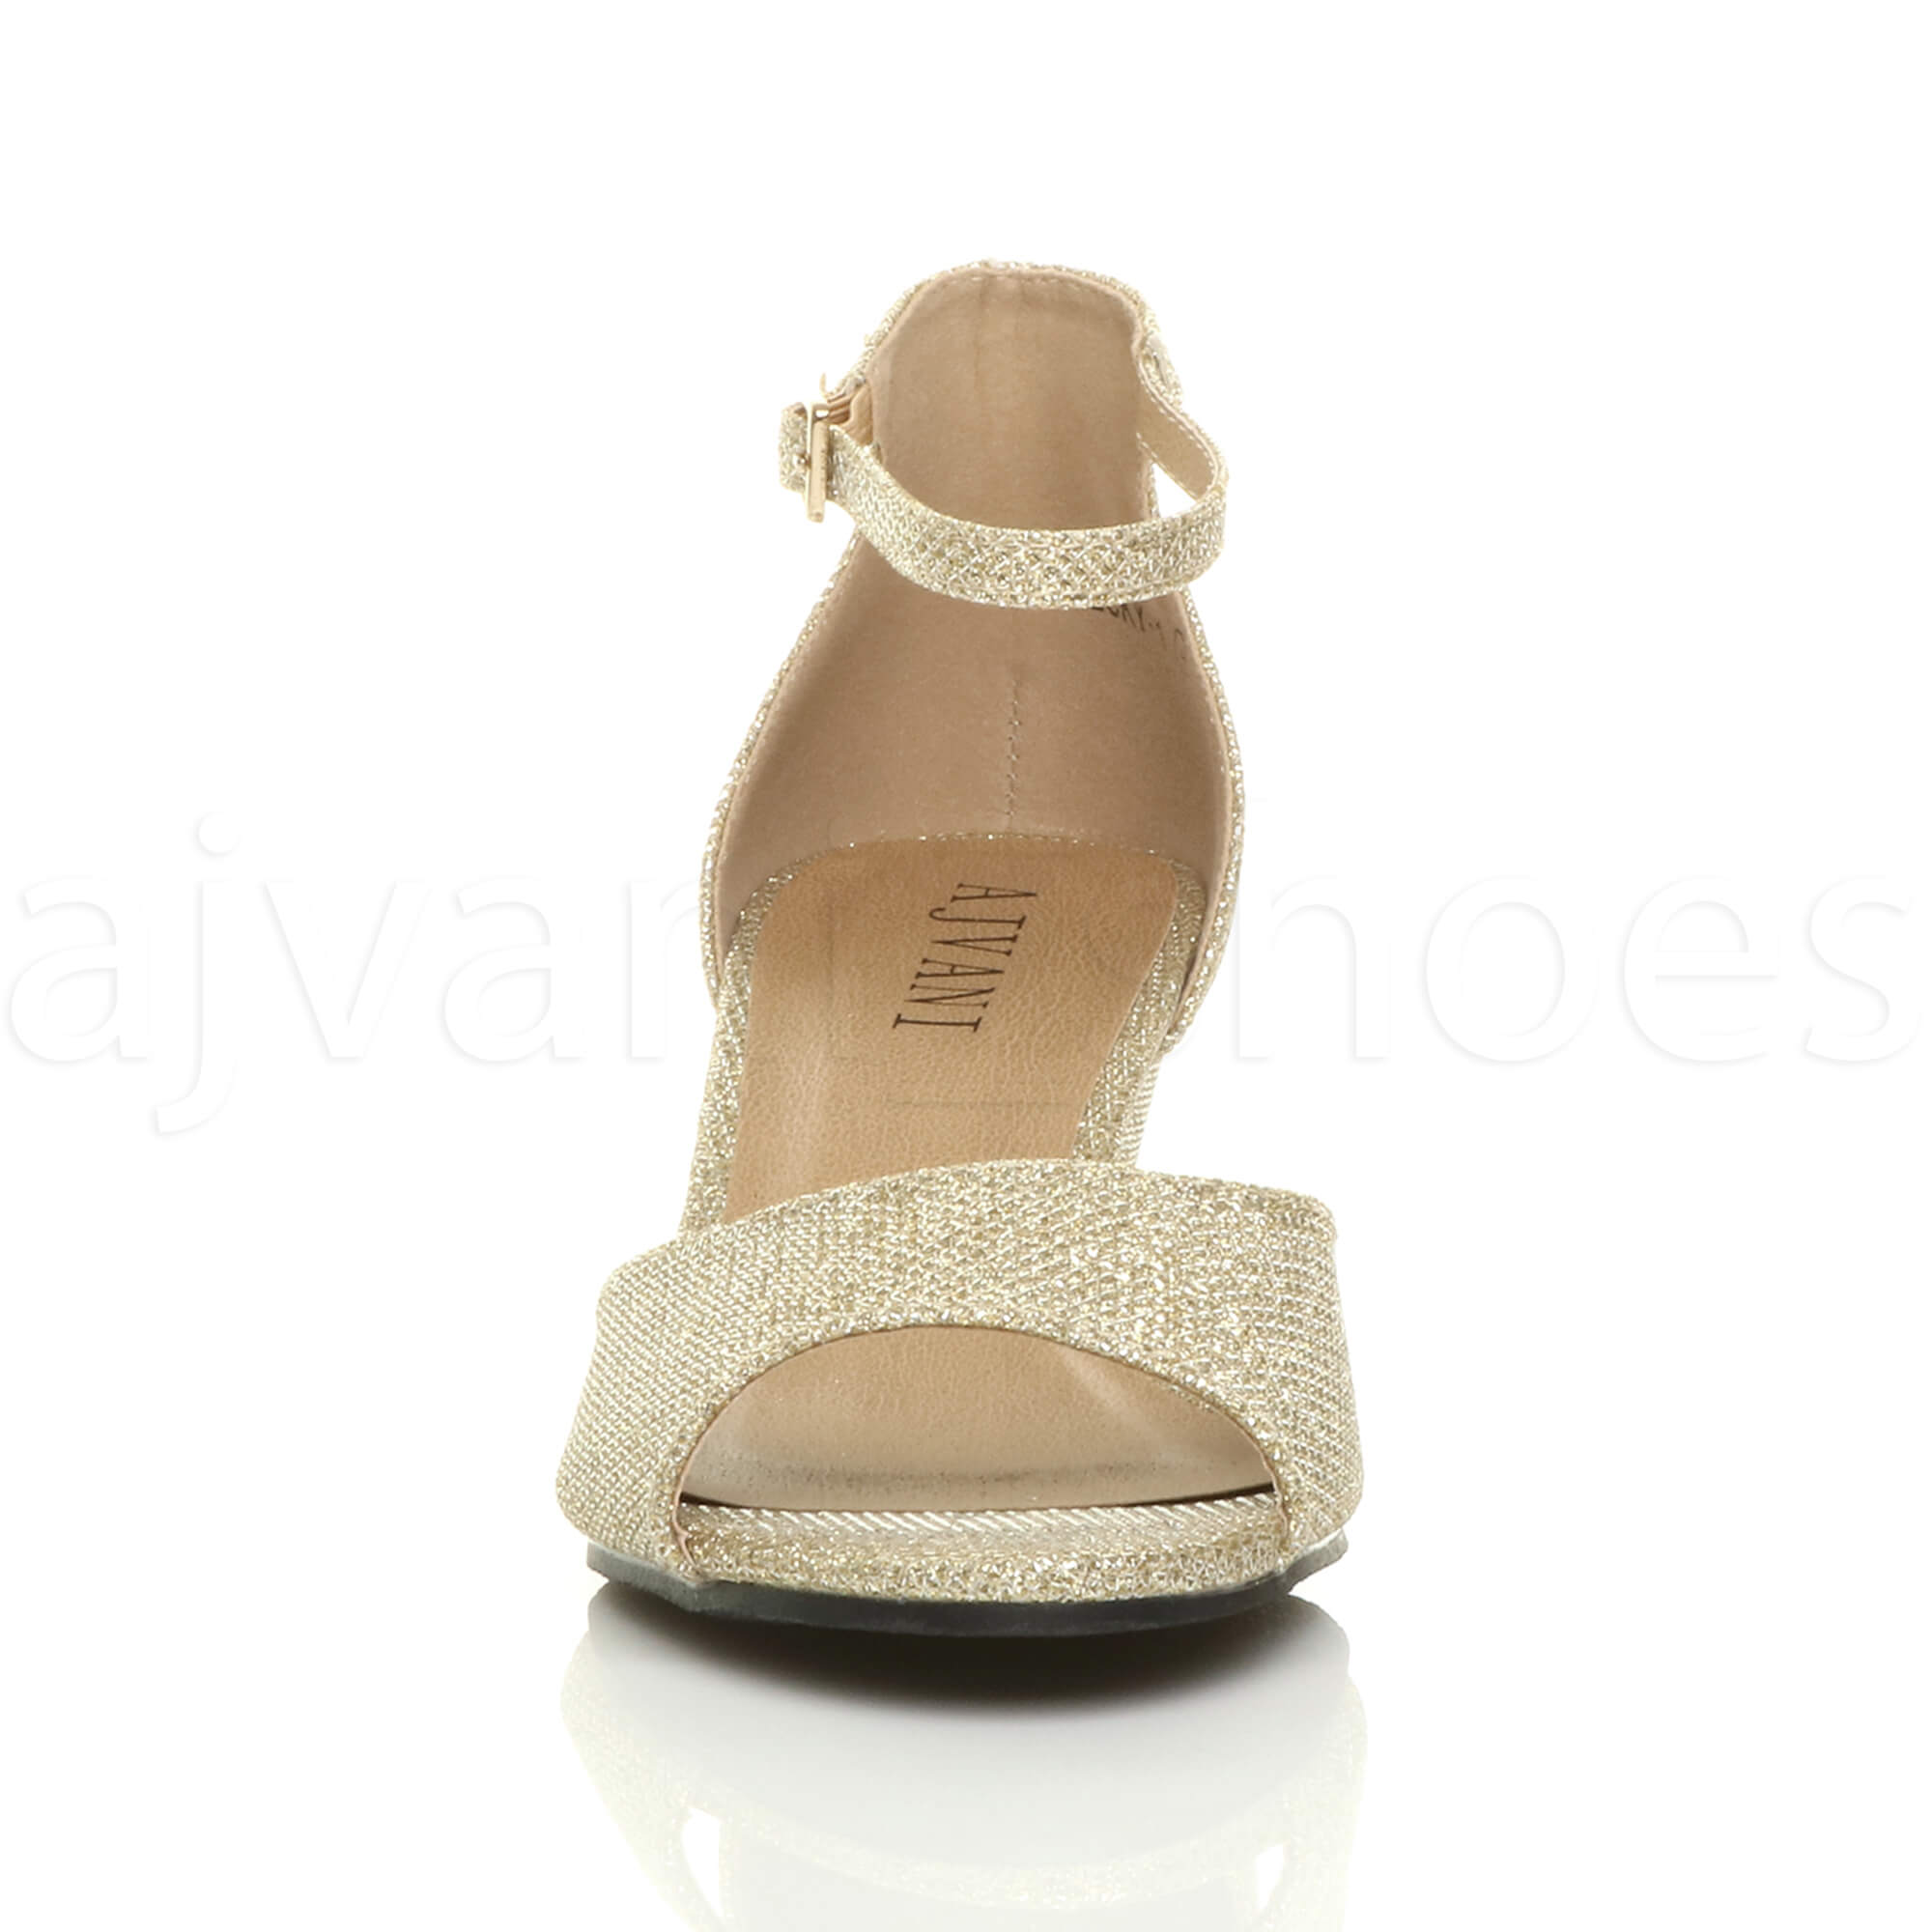 WOMENS-LADIES-LOW-MID-WEDGE-HEEL-ANKLE-STRAP-SMART-CASUAL-EVENING-SANDALS-SIZE thumbnail 55